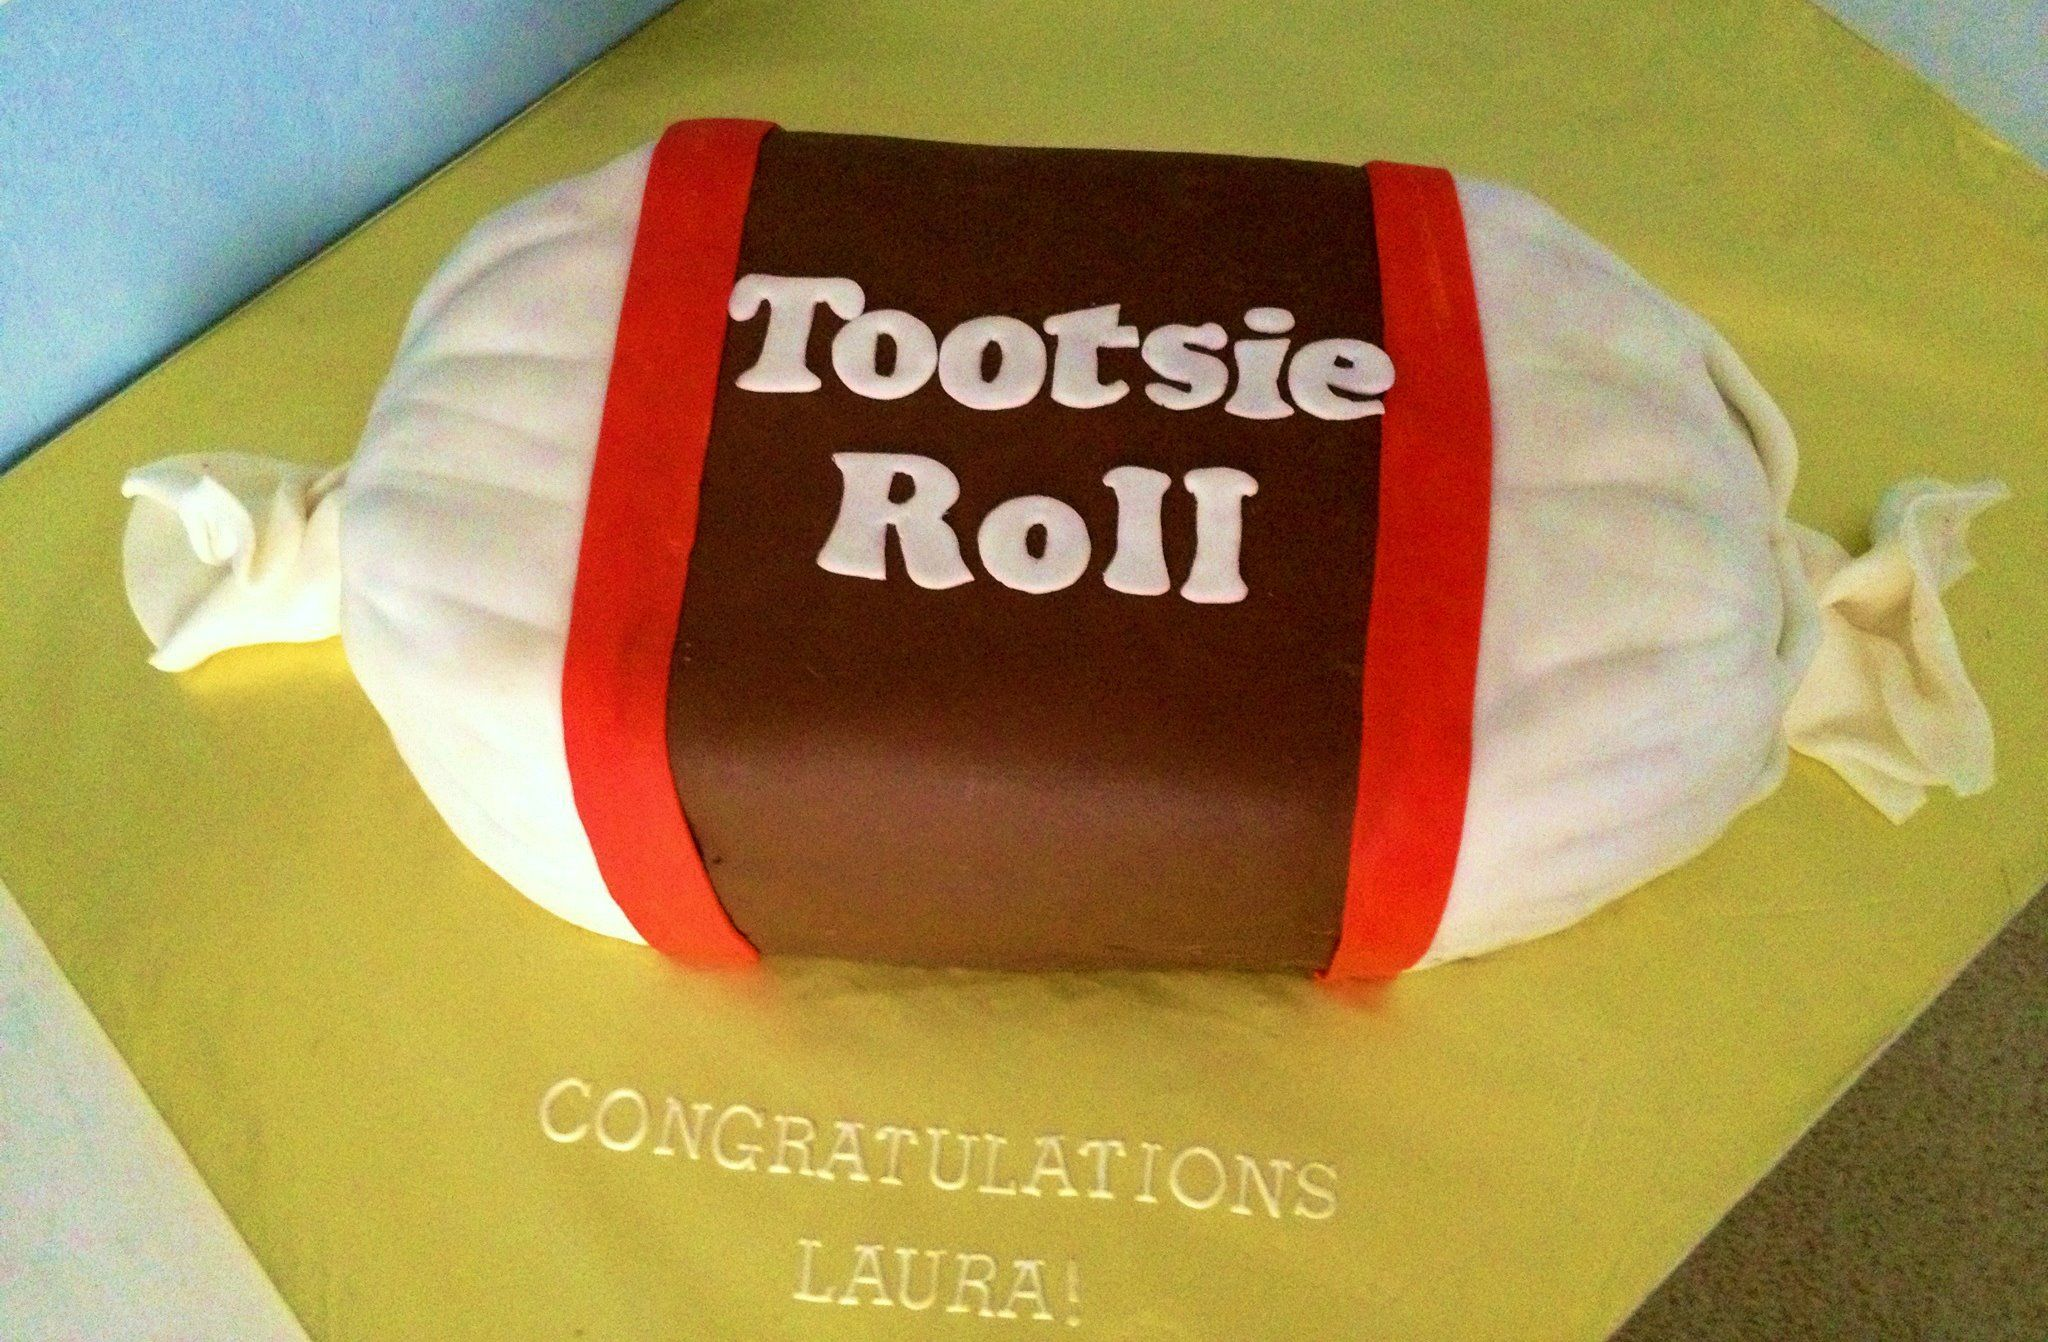 A very large Tootsie Roll cake for an fan!